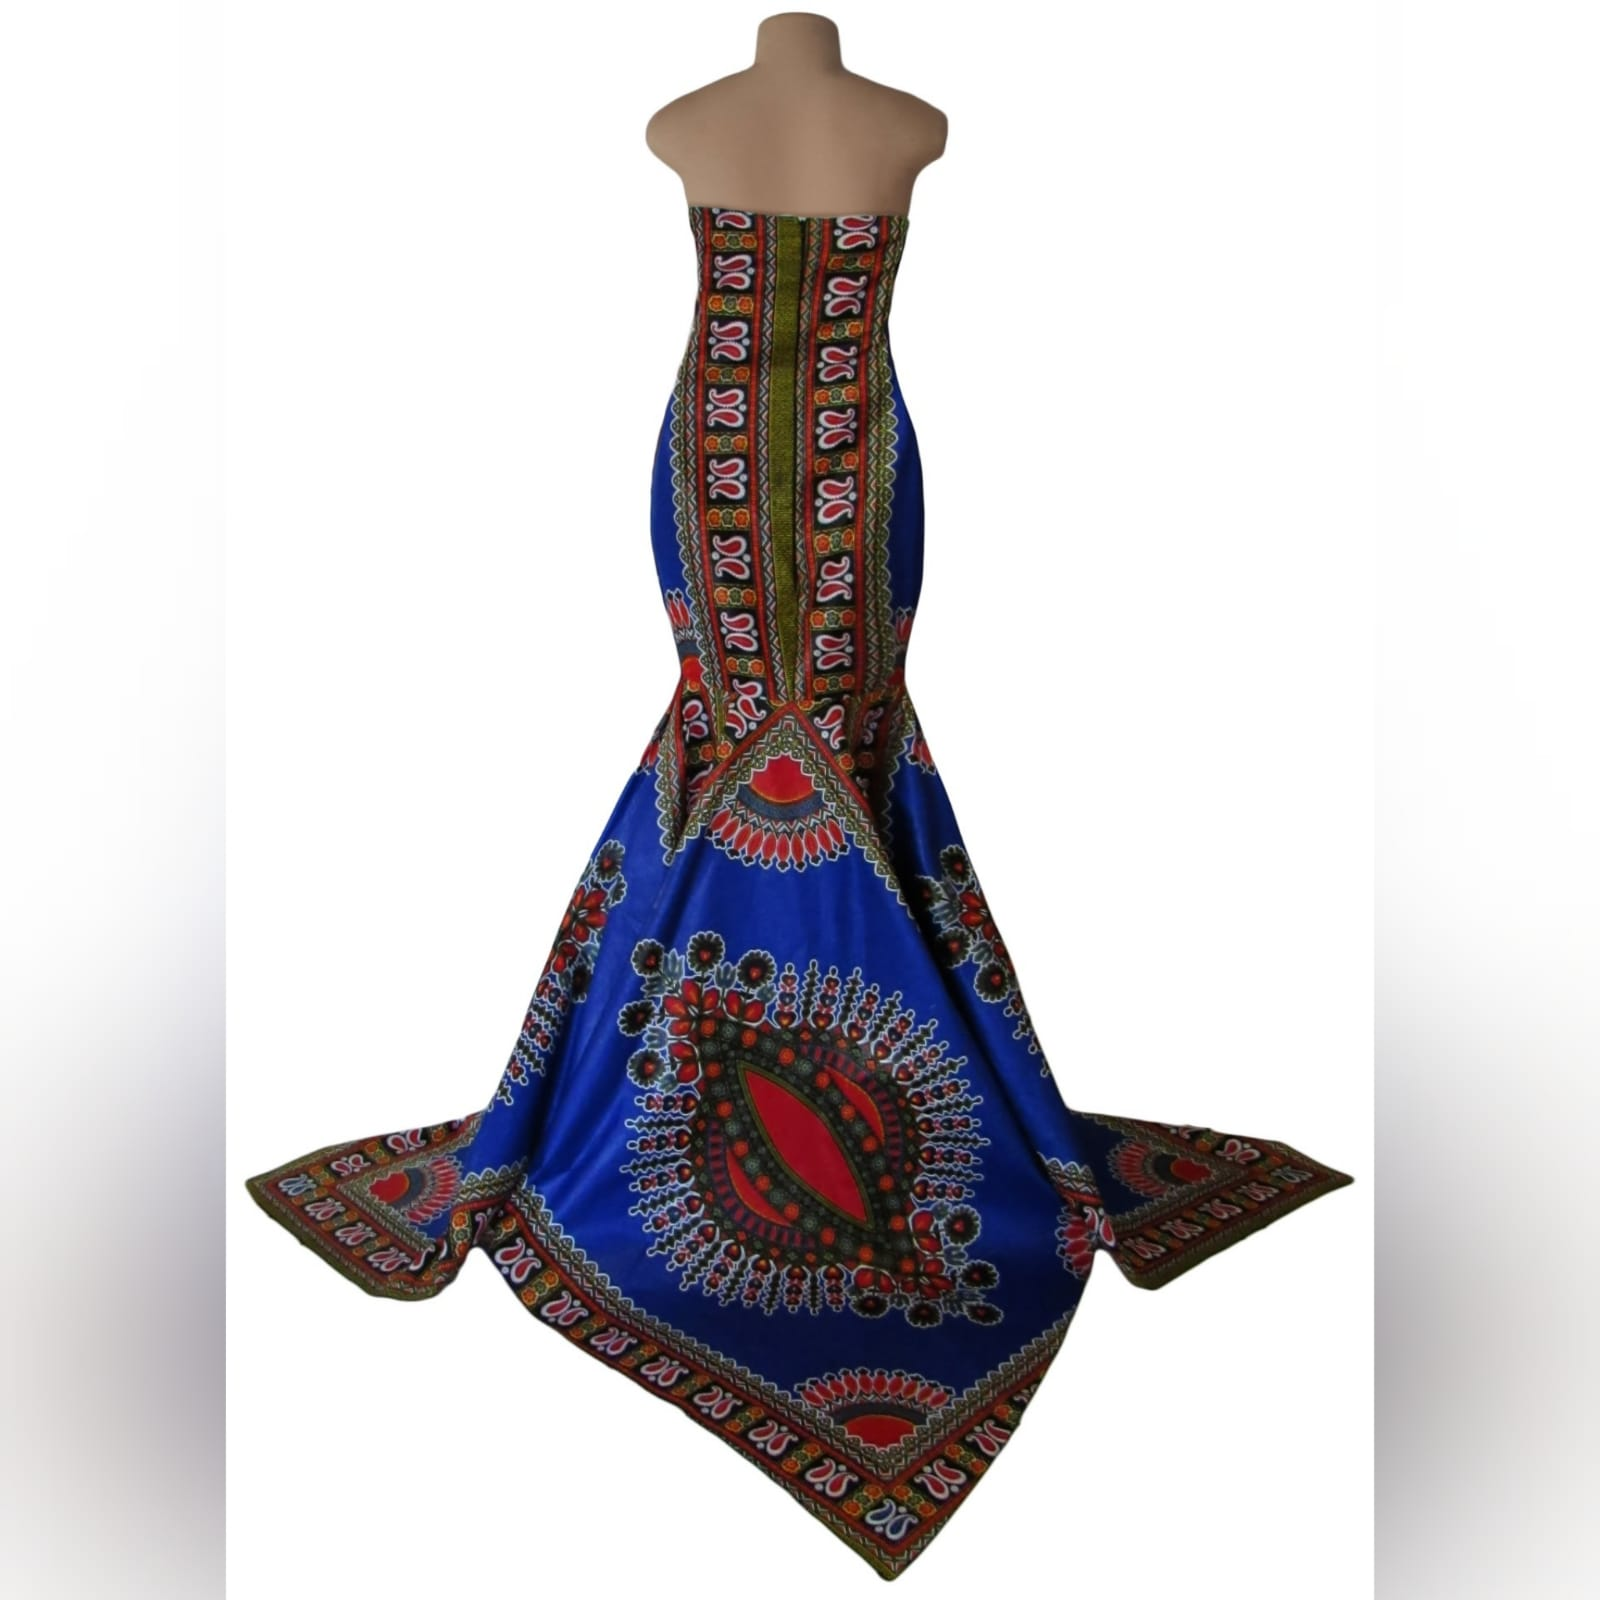 Soft mermaid formal printed dress 7 soft mermaid formal printed dress was worn for a special occasion. This mermaid dress is made with a traditional dashiki print, with a 3 point train.